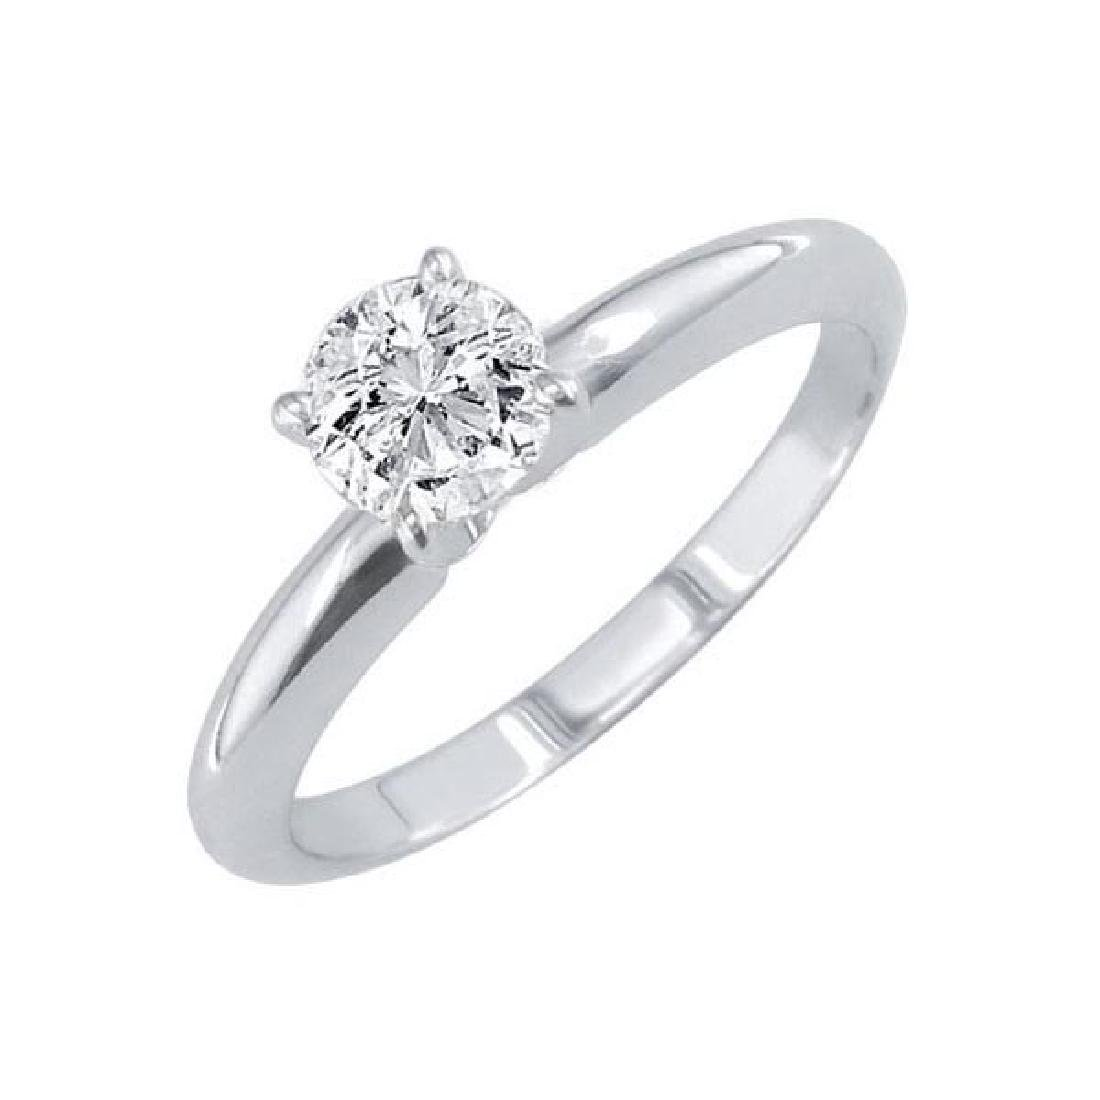 Certified 1.21 CTW Round Diamond Solitaire 14k Ring E/S